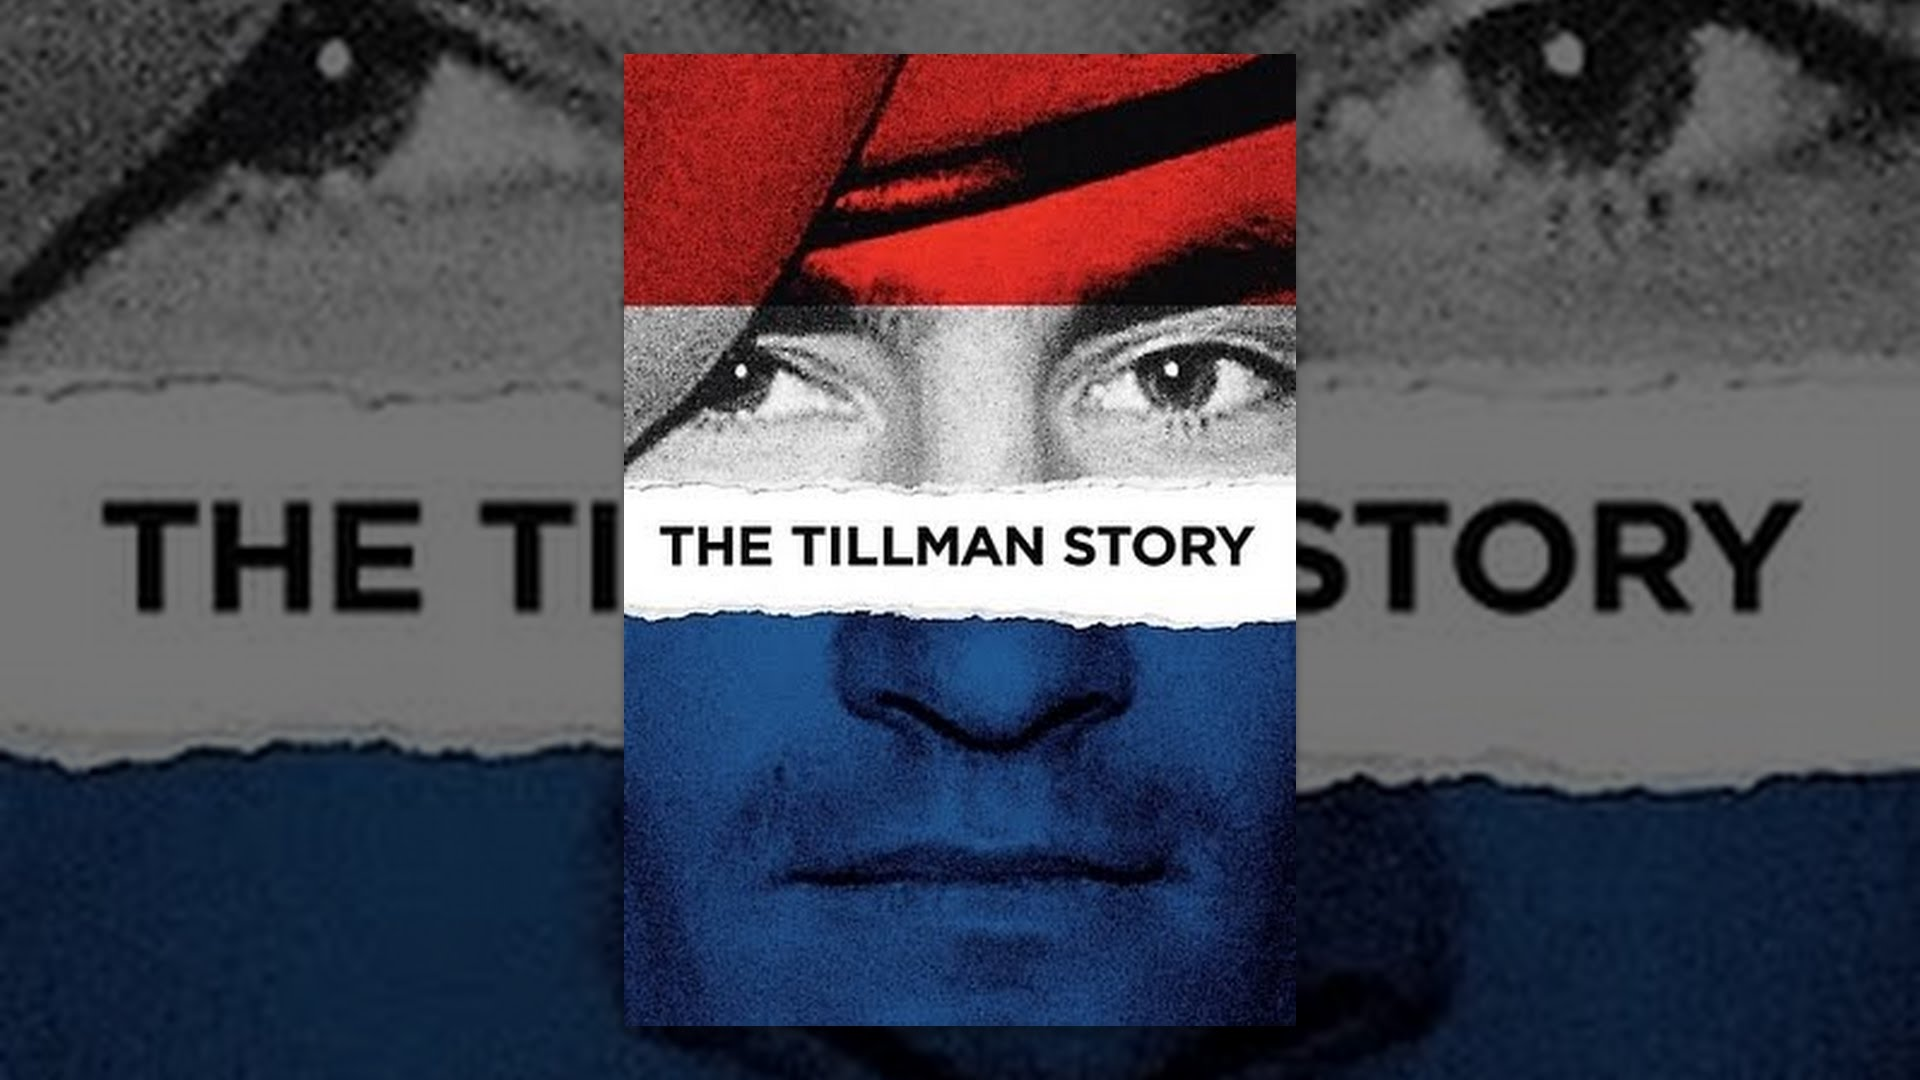 the tillman story Music, film, tv and political news coverage.